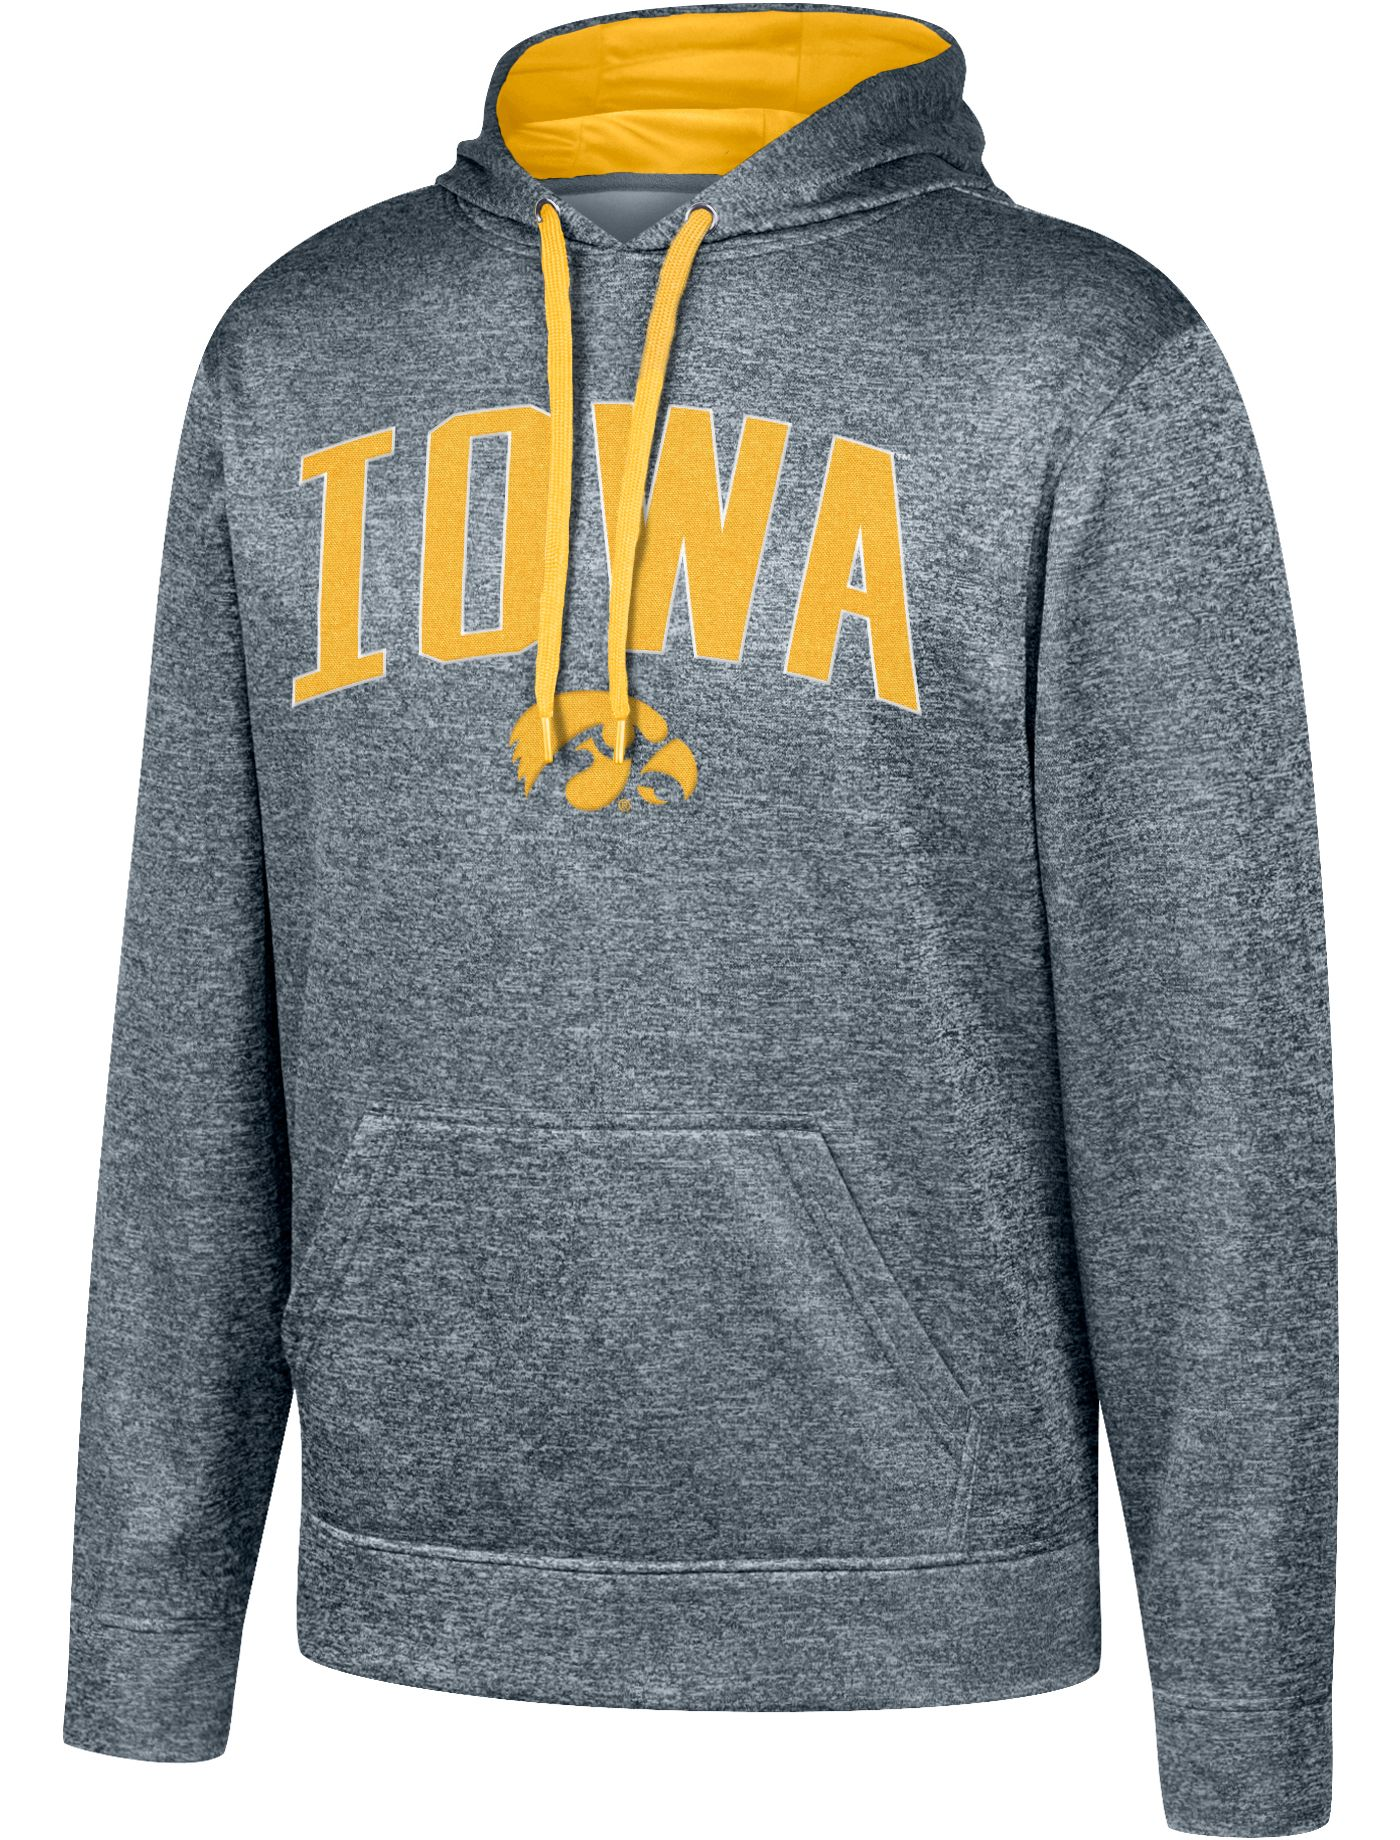 Top of the World Men's Iowa Hawkeyes Grey Foundation Poly Hoodie